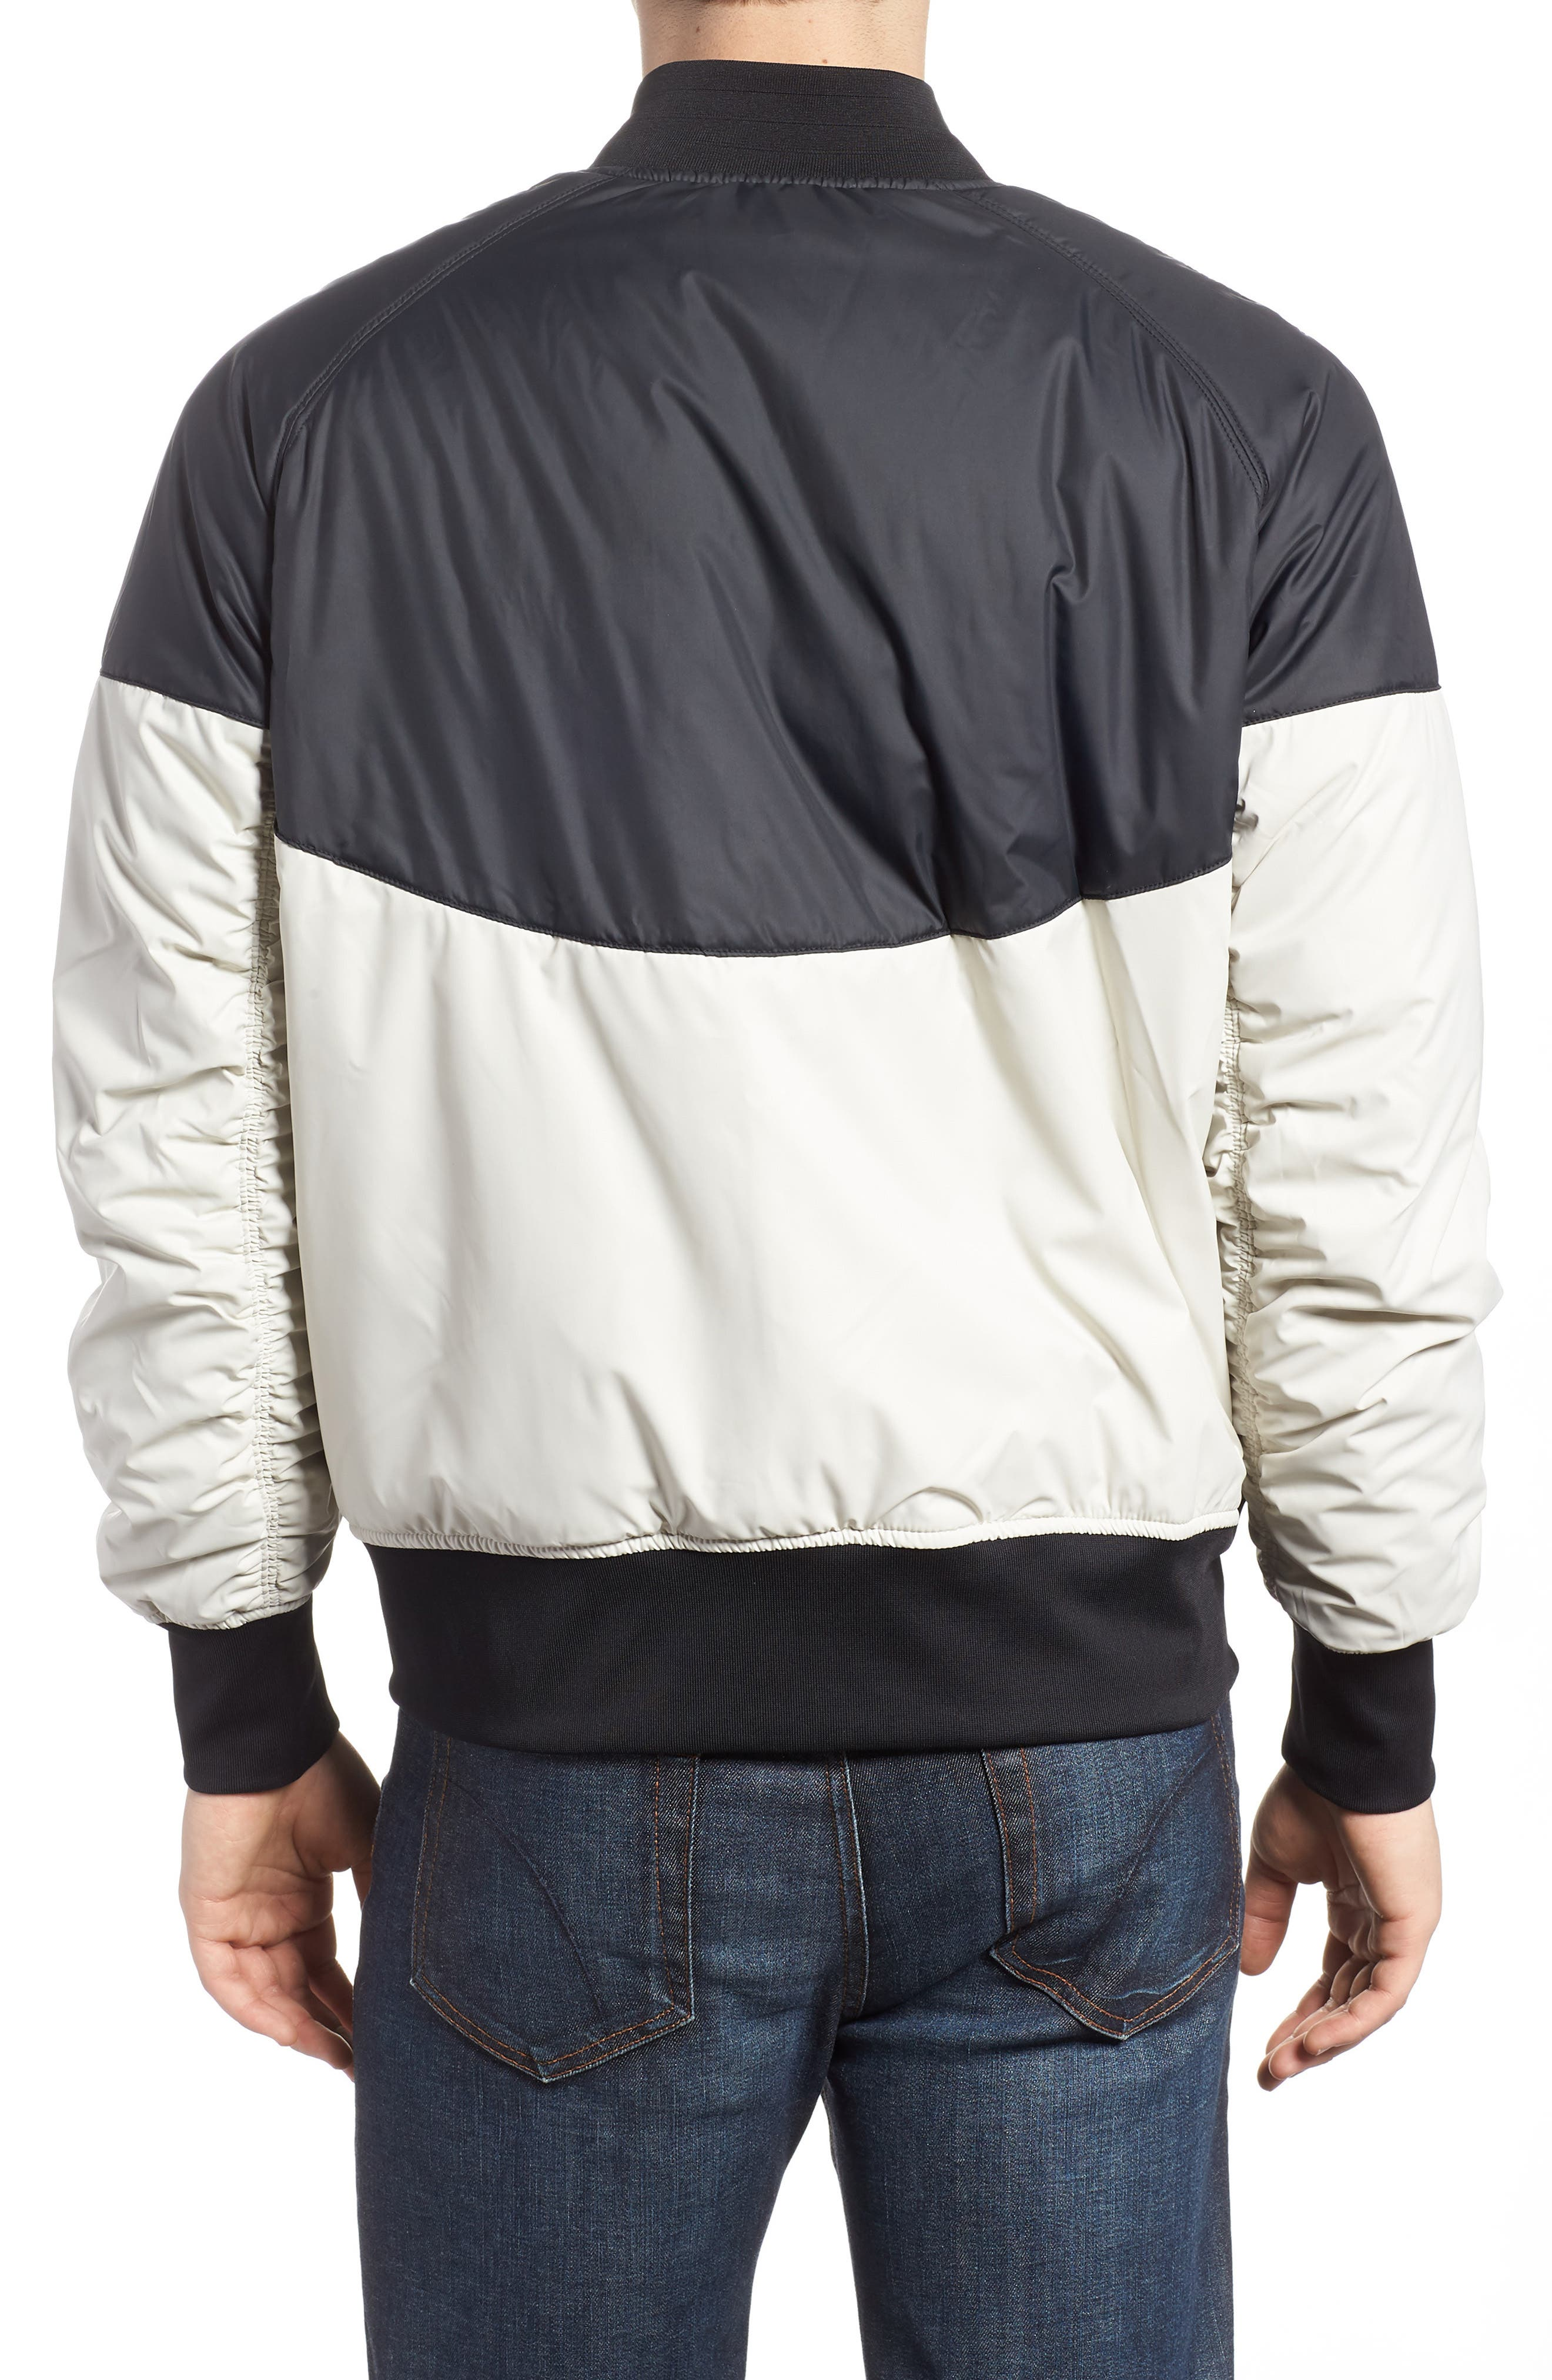 NSW Air Force 1 Jacket,                             Alternate thumbnail 3, color,                             010